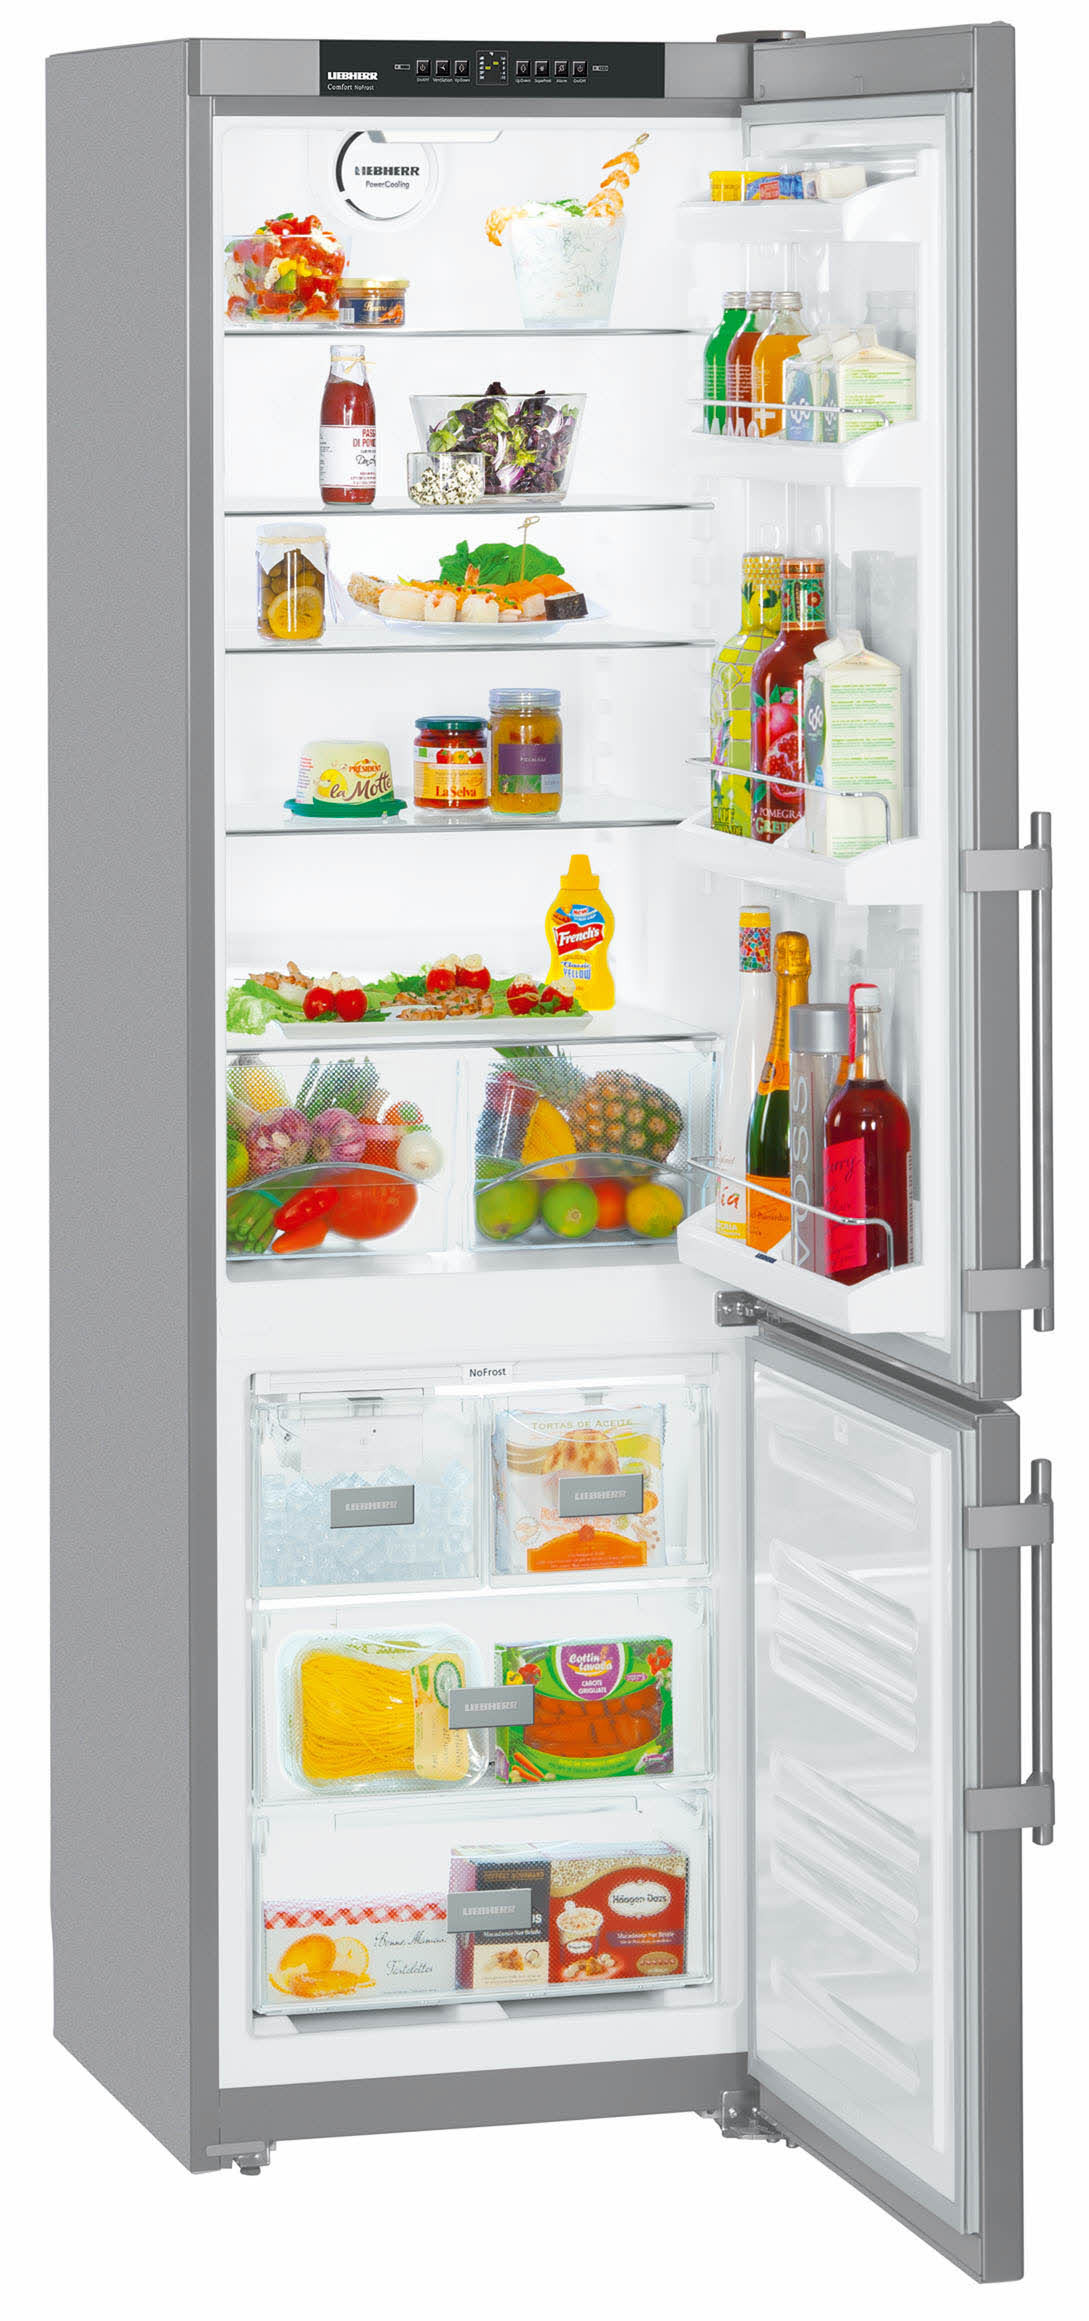 Commercial refrigerator for home use - Commercial Refrigerator For Home Use 55